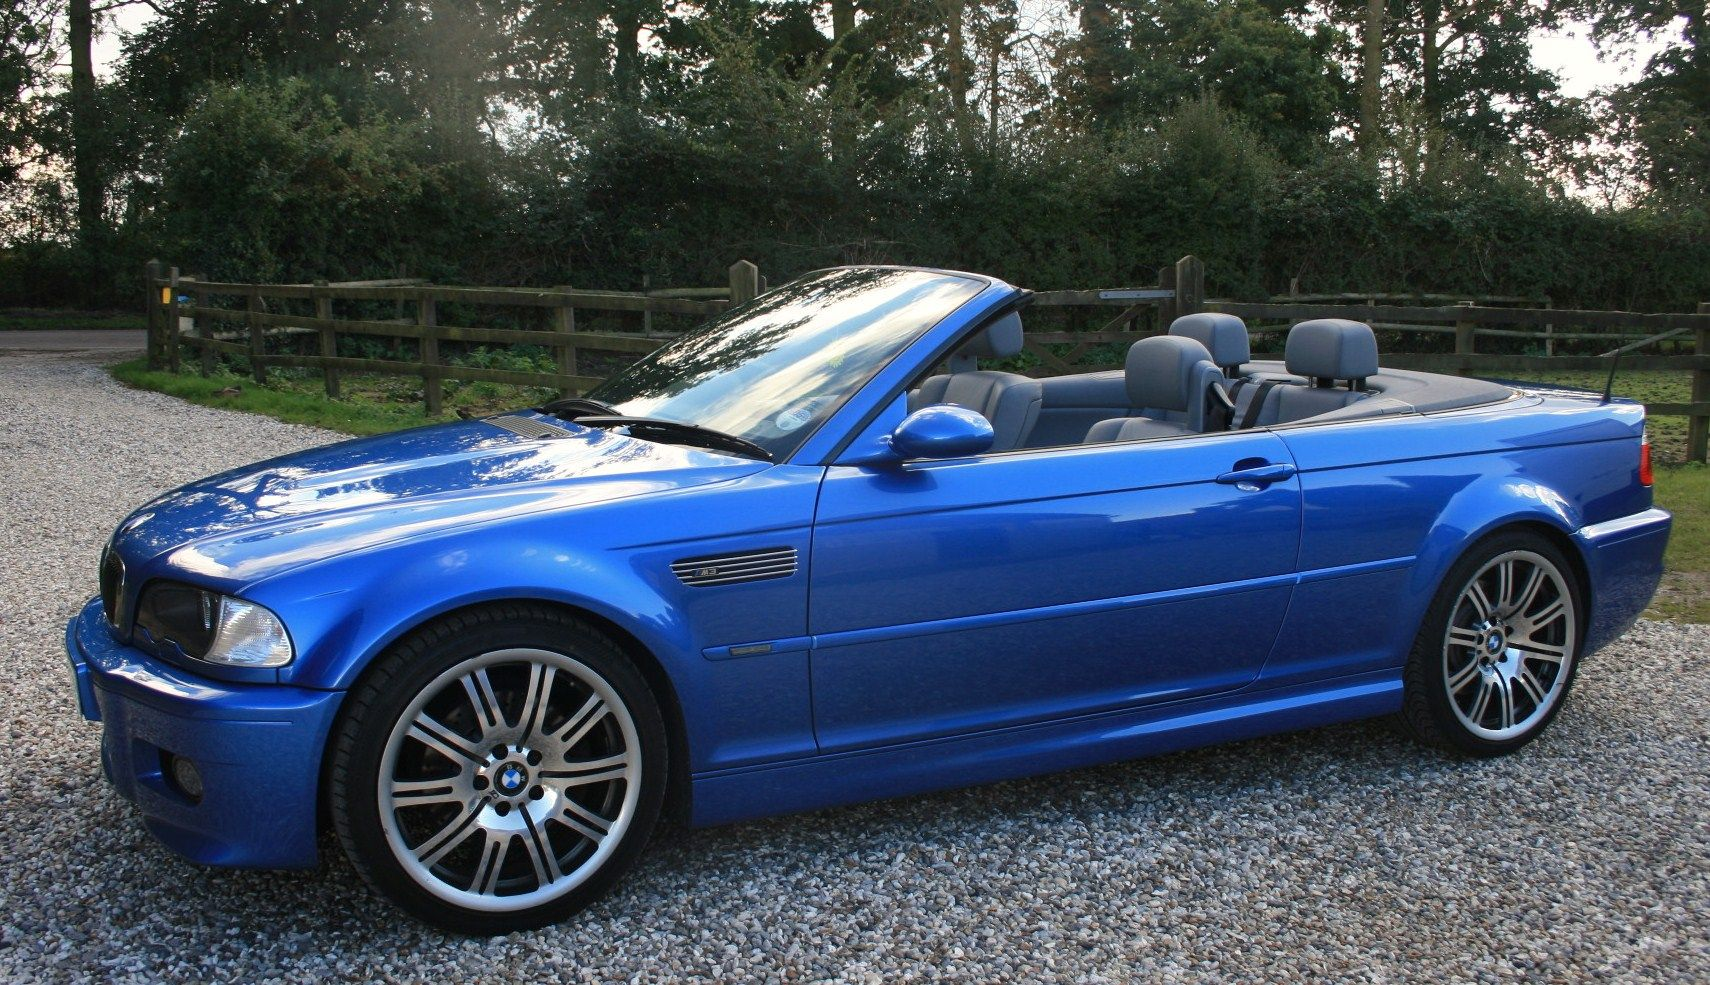 Find Cars For Sale BMW Series D M Convertible Used Car For - Bmw 3 series 2006 price